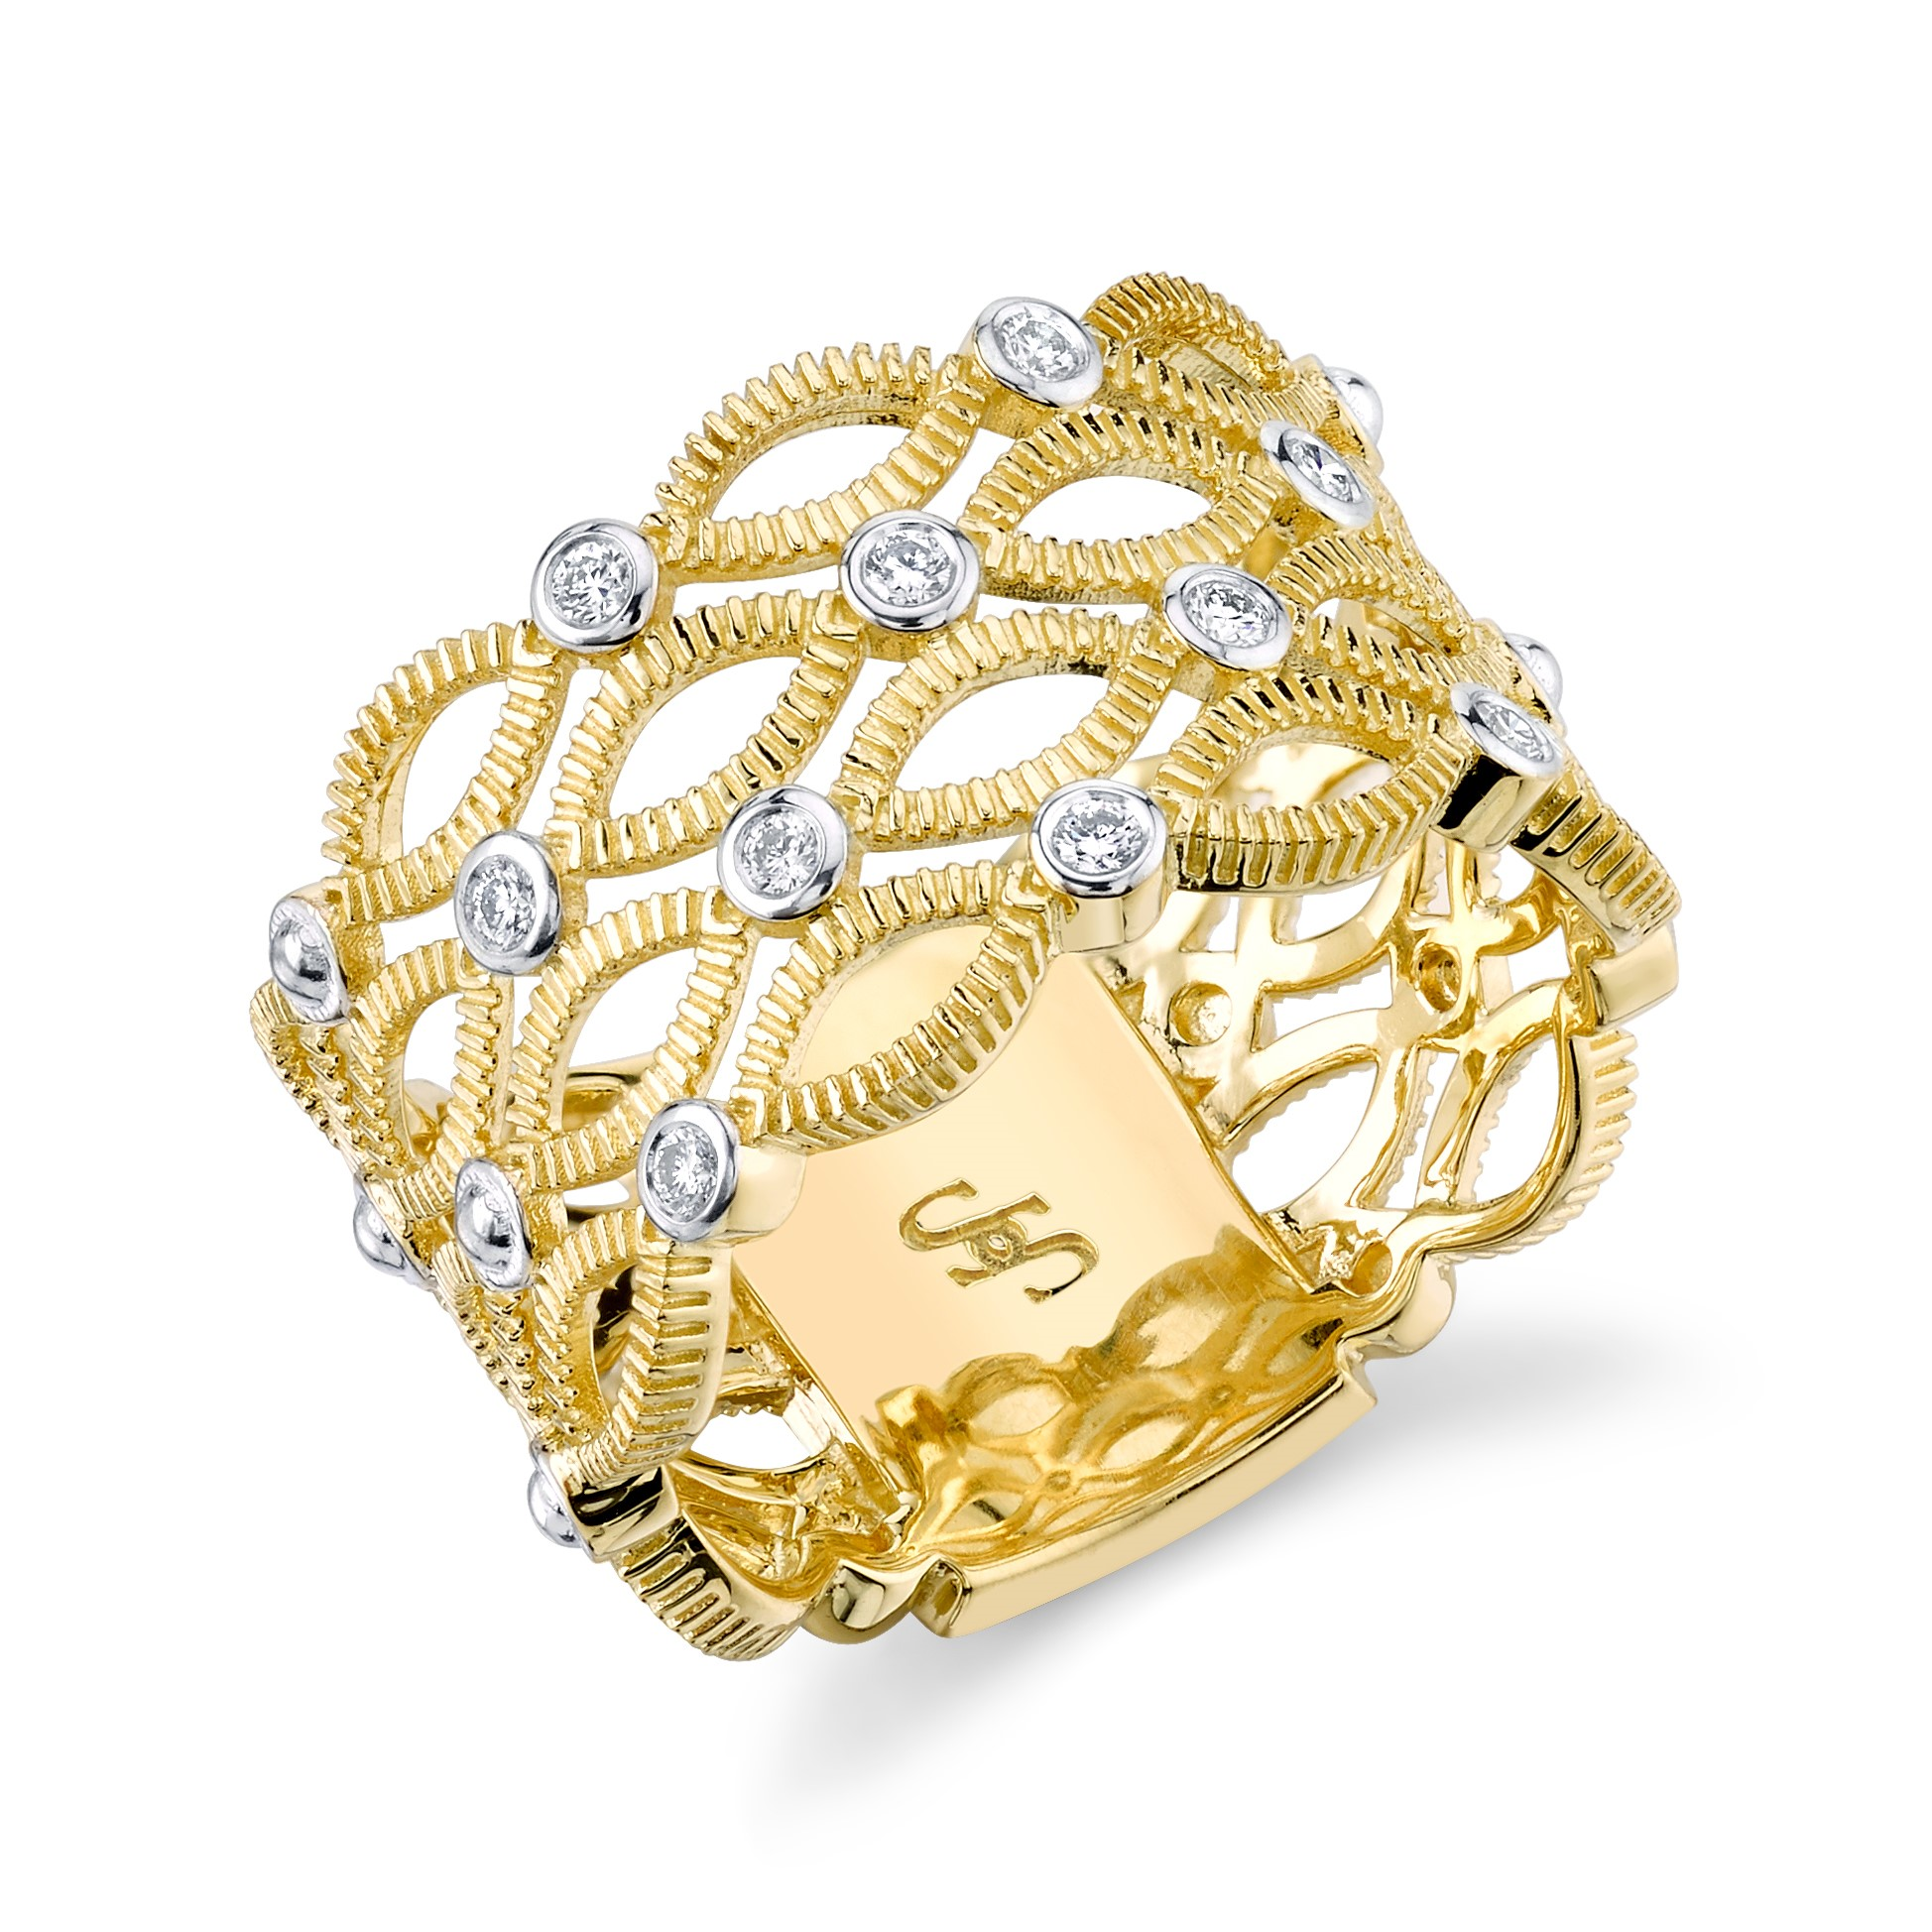 Sloane Street 18K Yellow Gold .15cts  Diamonds Gold Ring with Stones R005E-WDCB-Y